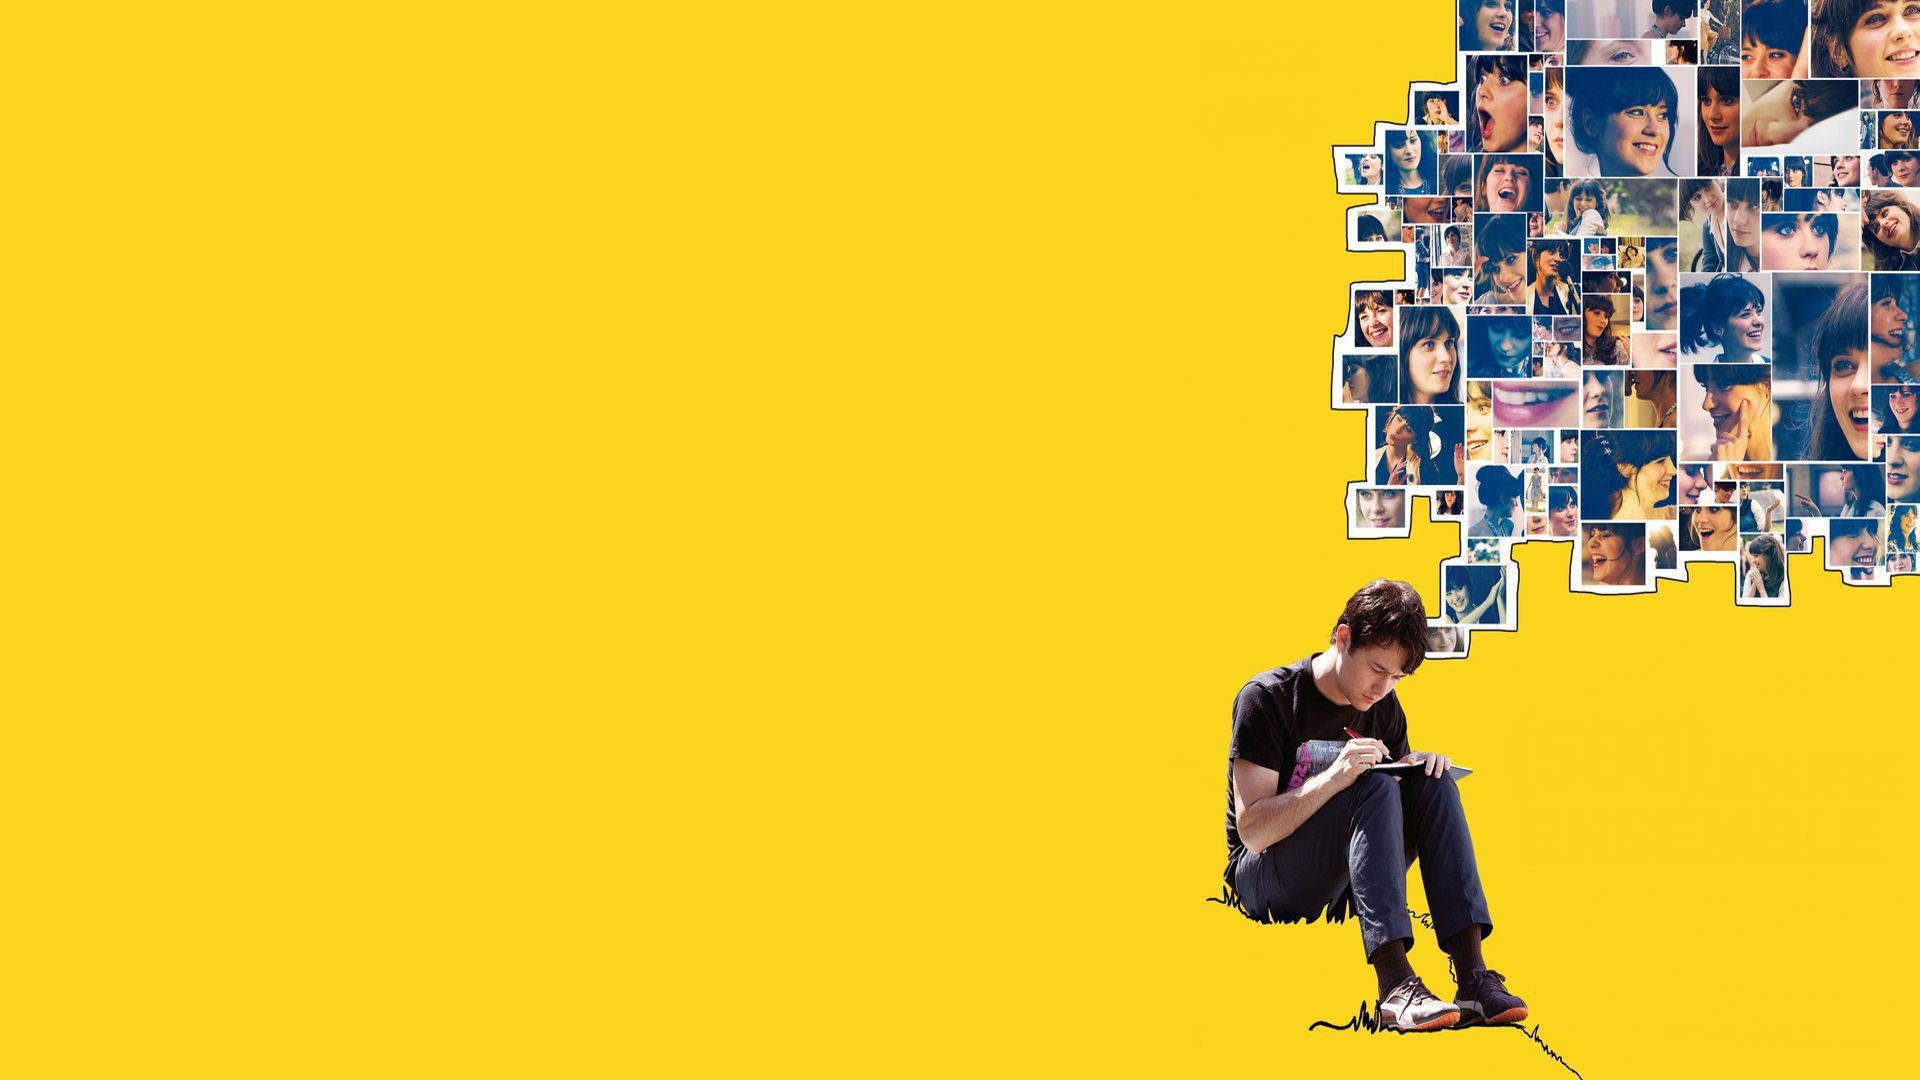 500 Days Of Summer Download Free Backgrounds HD